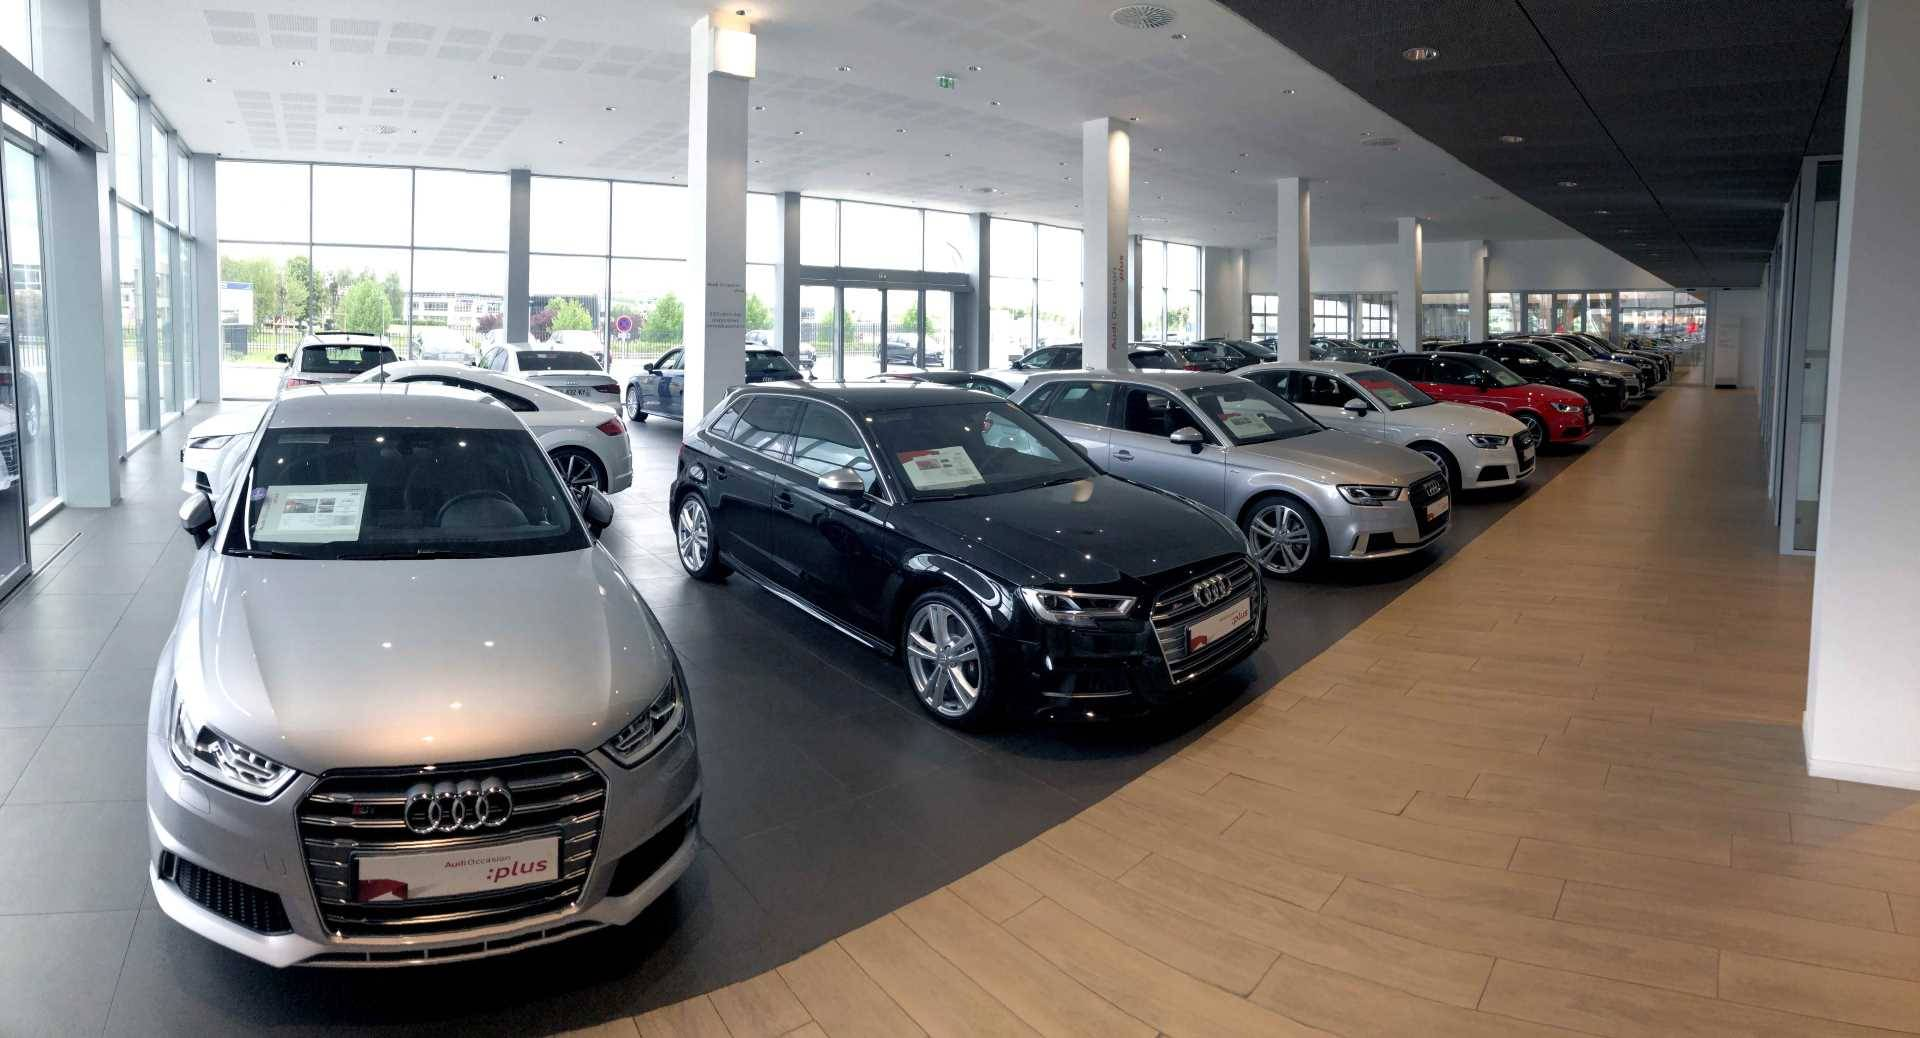 Exposition Audi Occasion :plus Bauer Paris Roissy